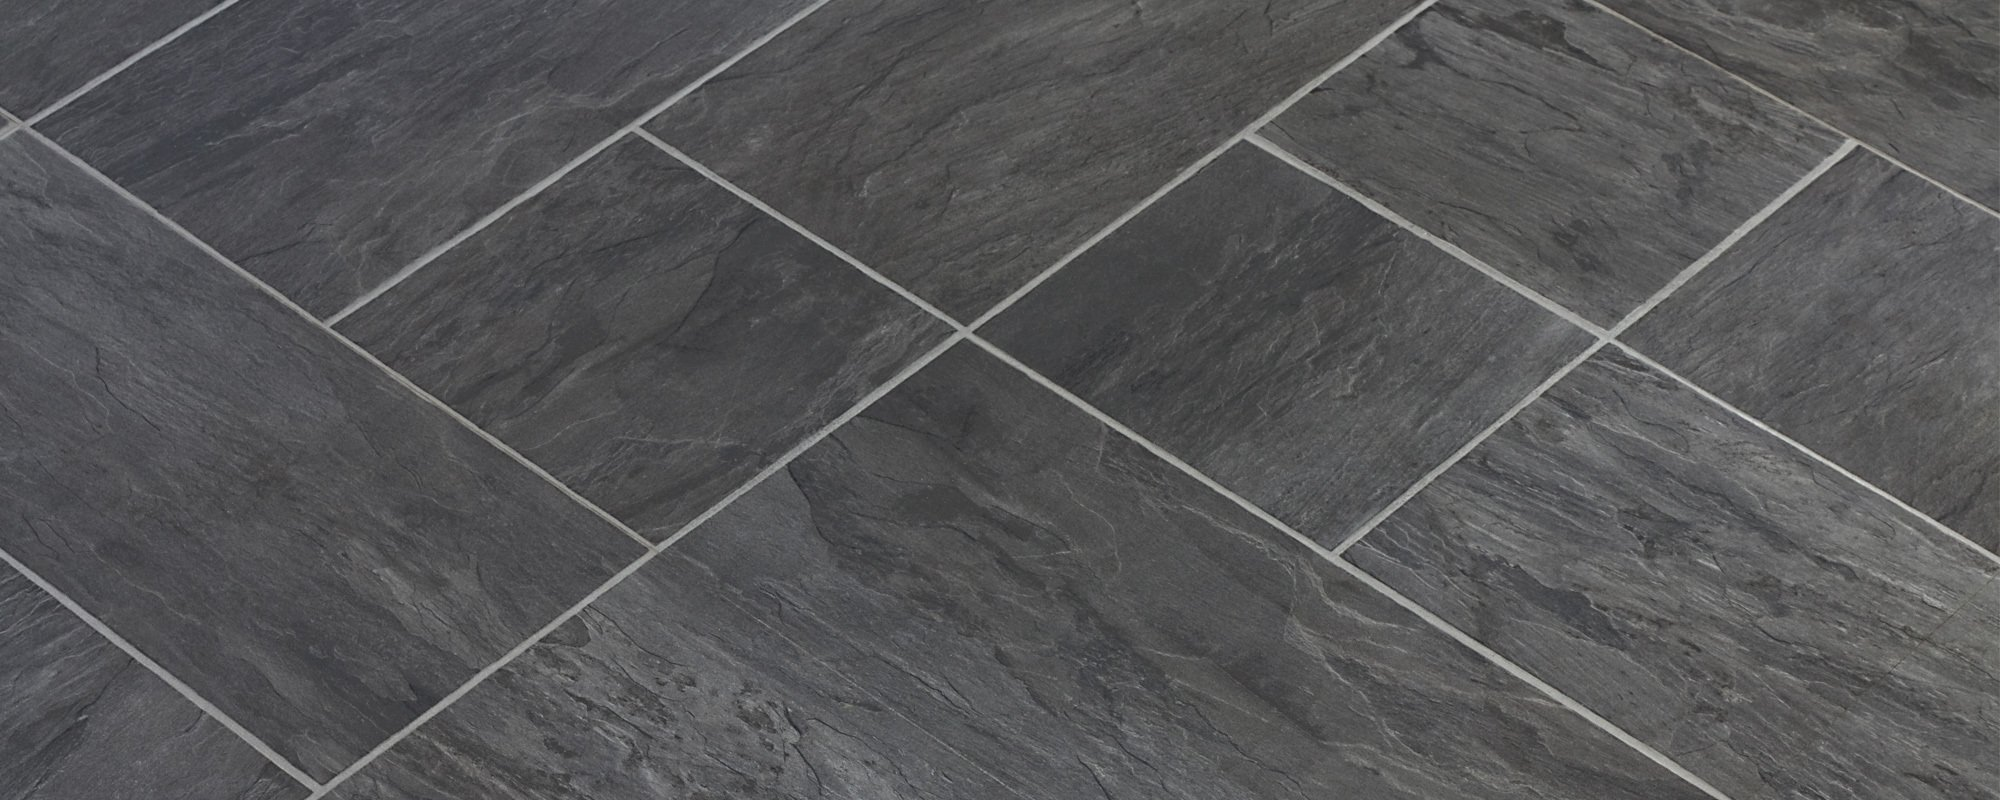 View of the flooring tiles